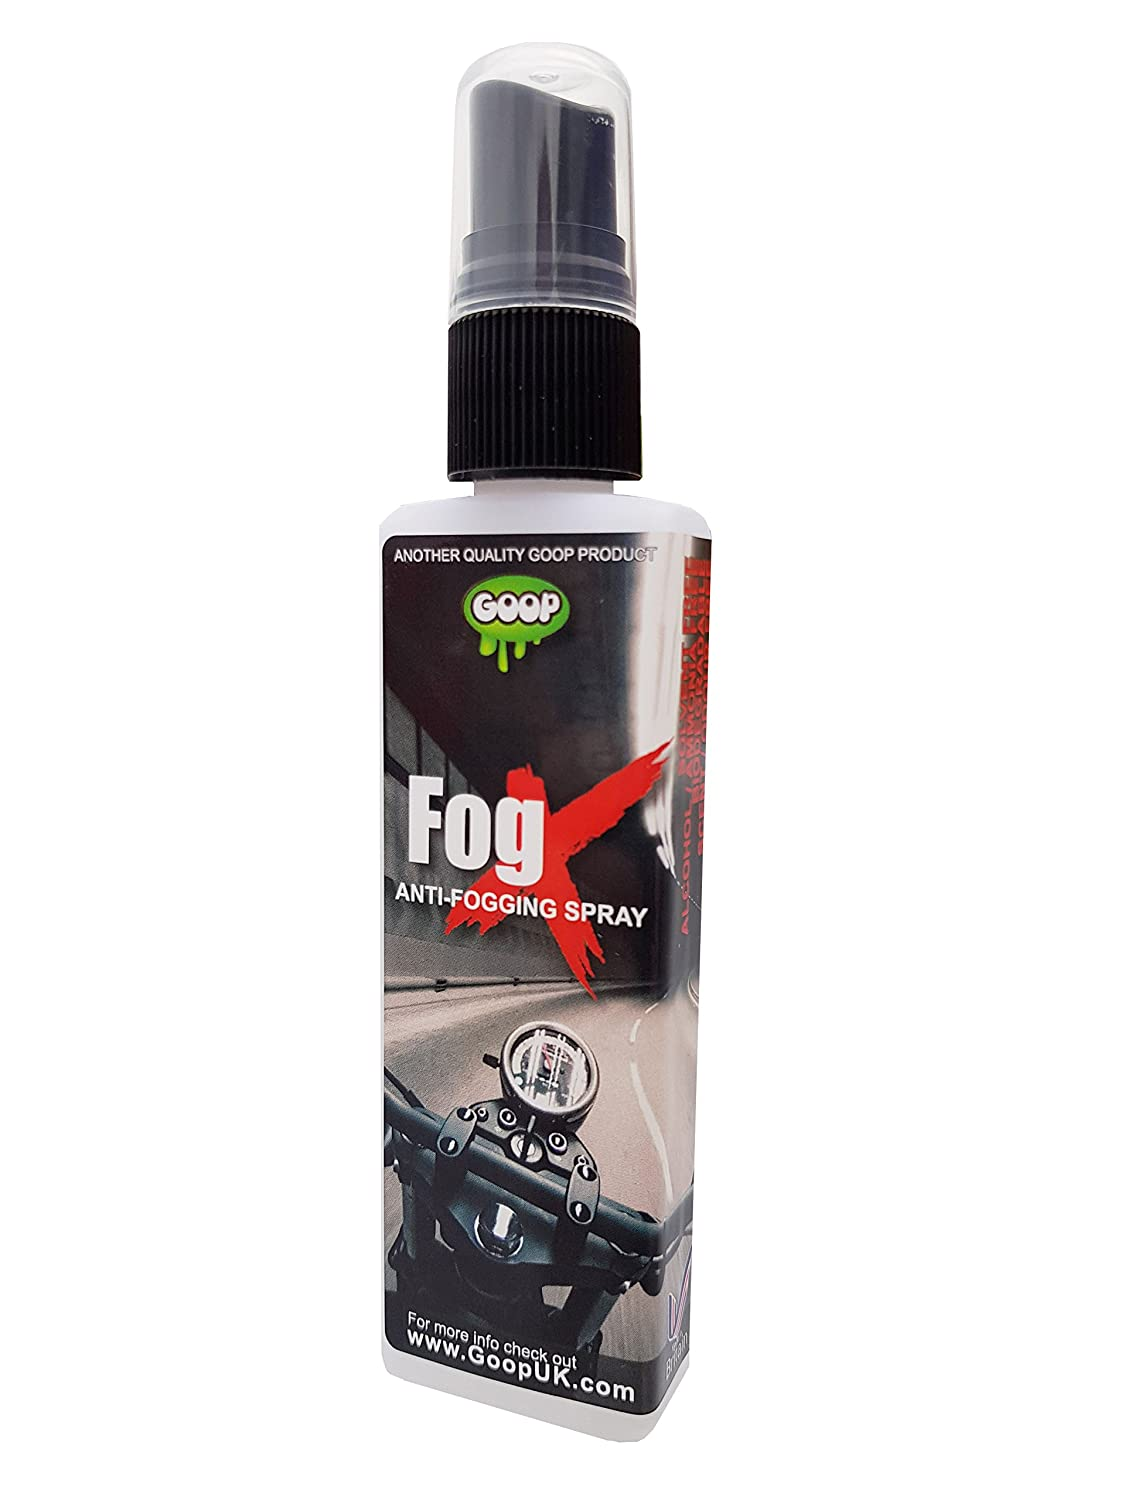 FOGX by Gator Anti-Mist, Anti-Fogging Spray for Helmet Visors / Goggles / Diving Masks / Spectacles / 50ml UK Made Gator UK 78201